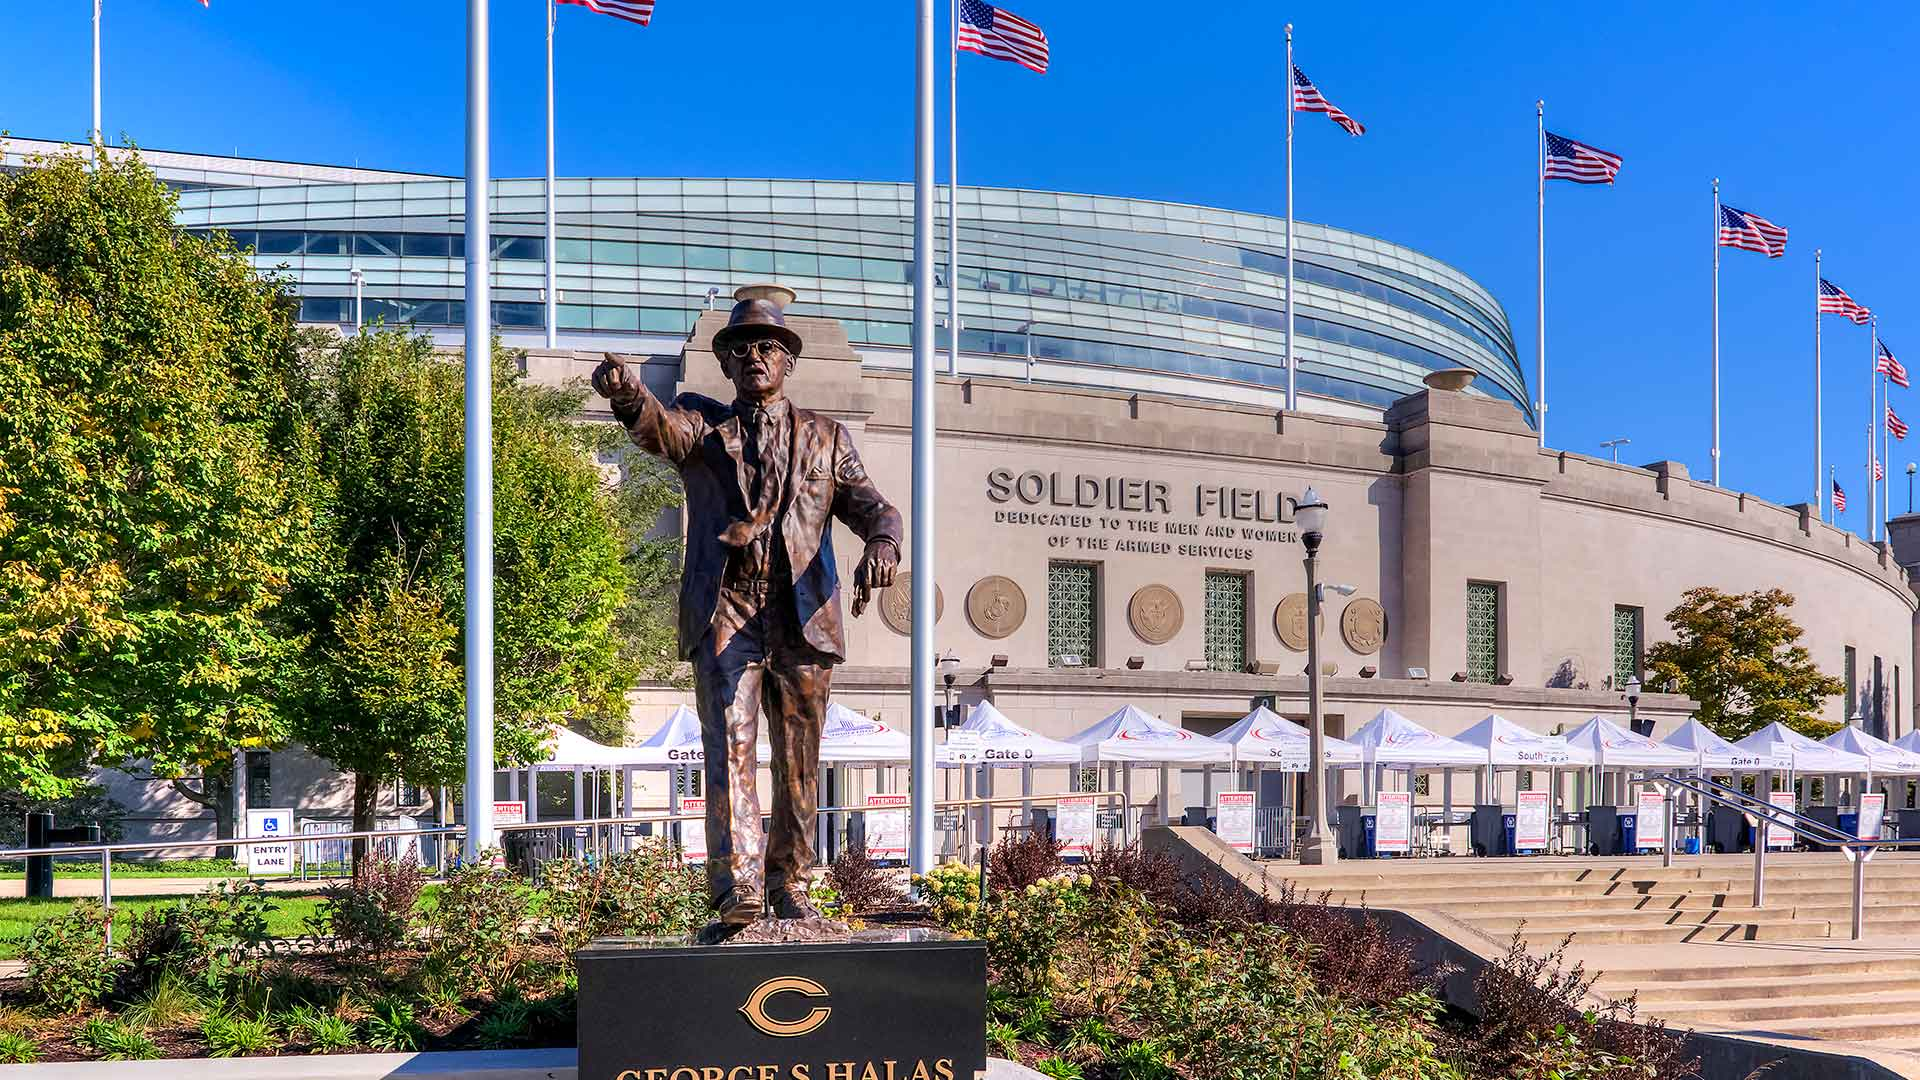 A statue standing in front of the main entrance to Solider Field in Chicago.